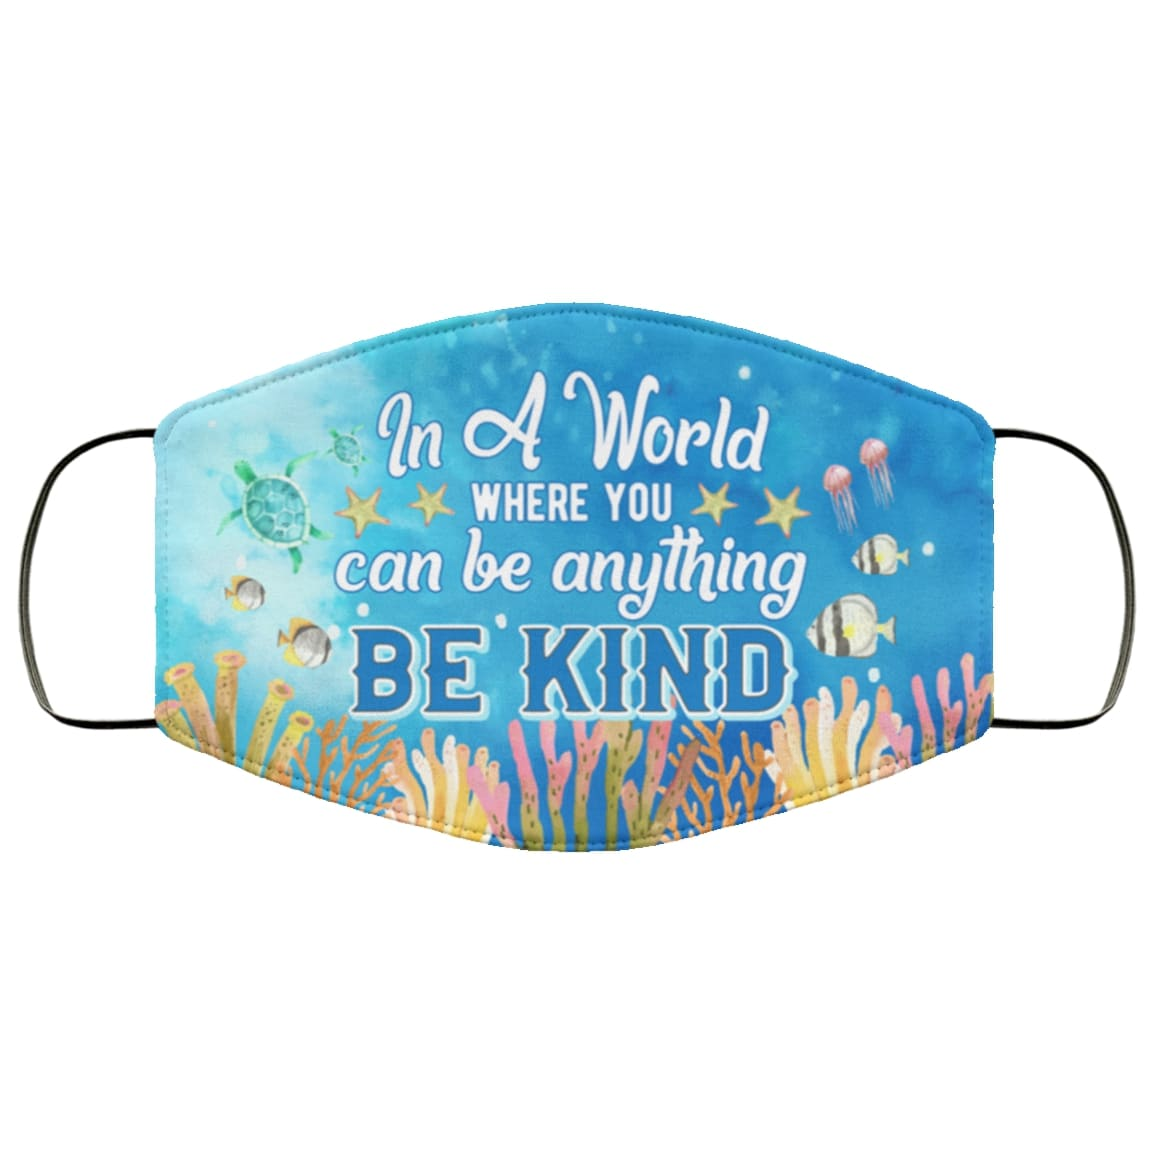 Ocean in a world where you can be anything be kind full over printed face mask 1